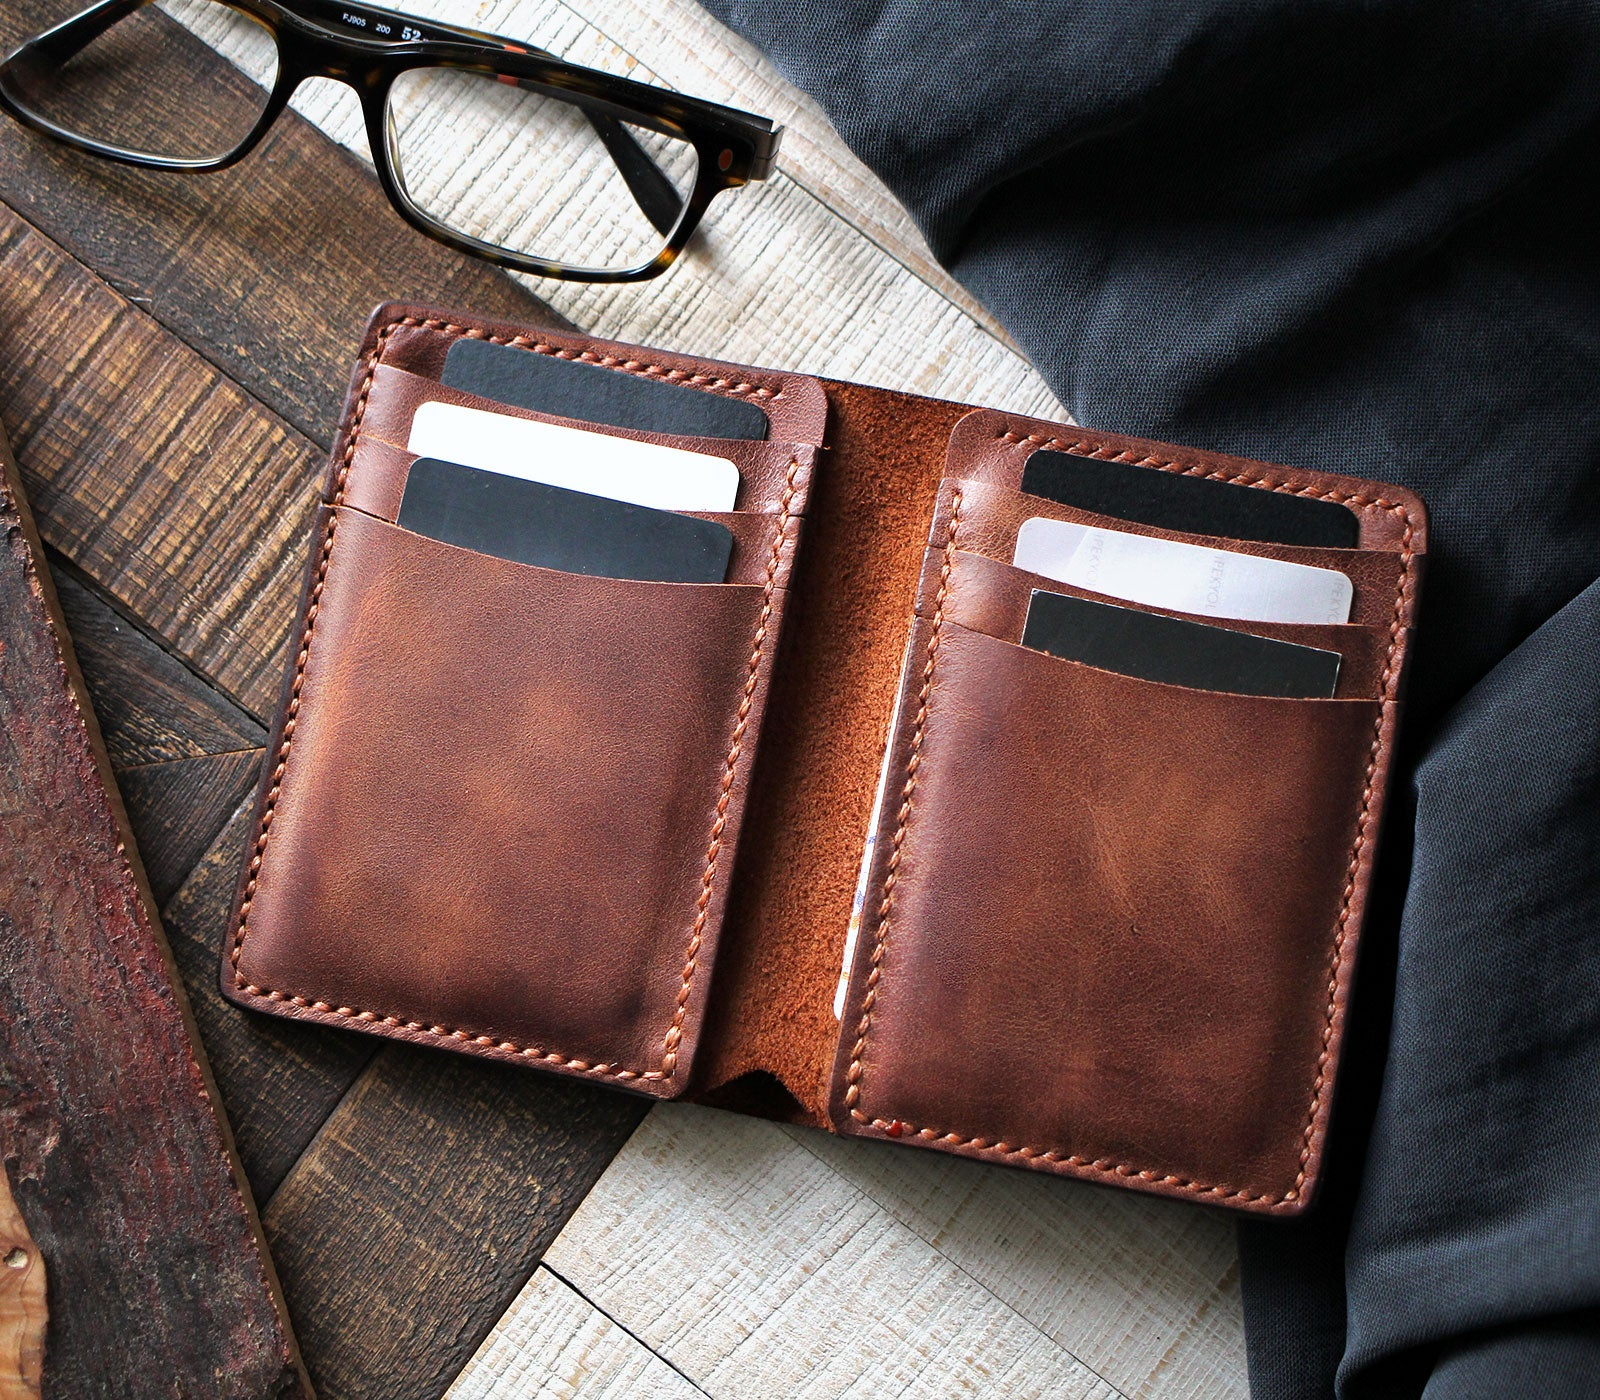 Vertical Wallet with Cash Pocket - Laodikya XL